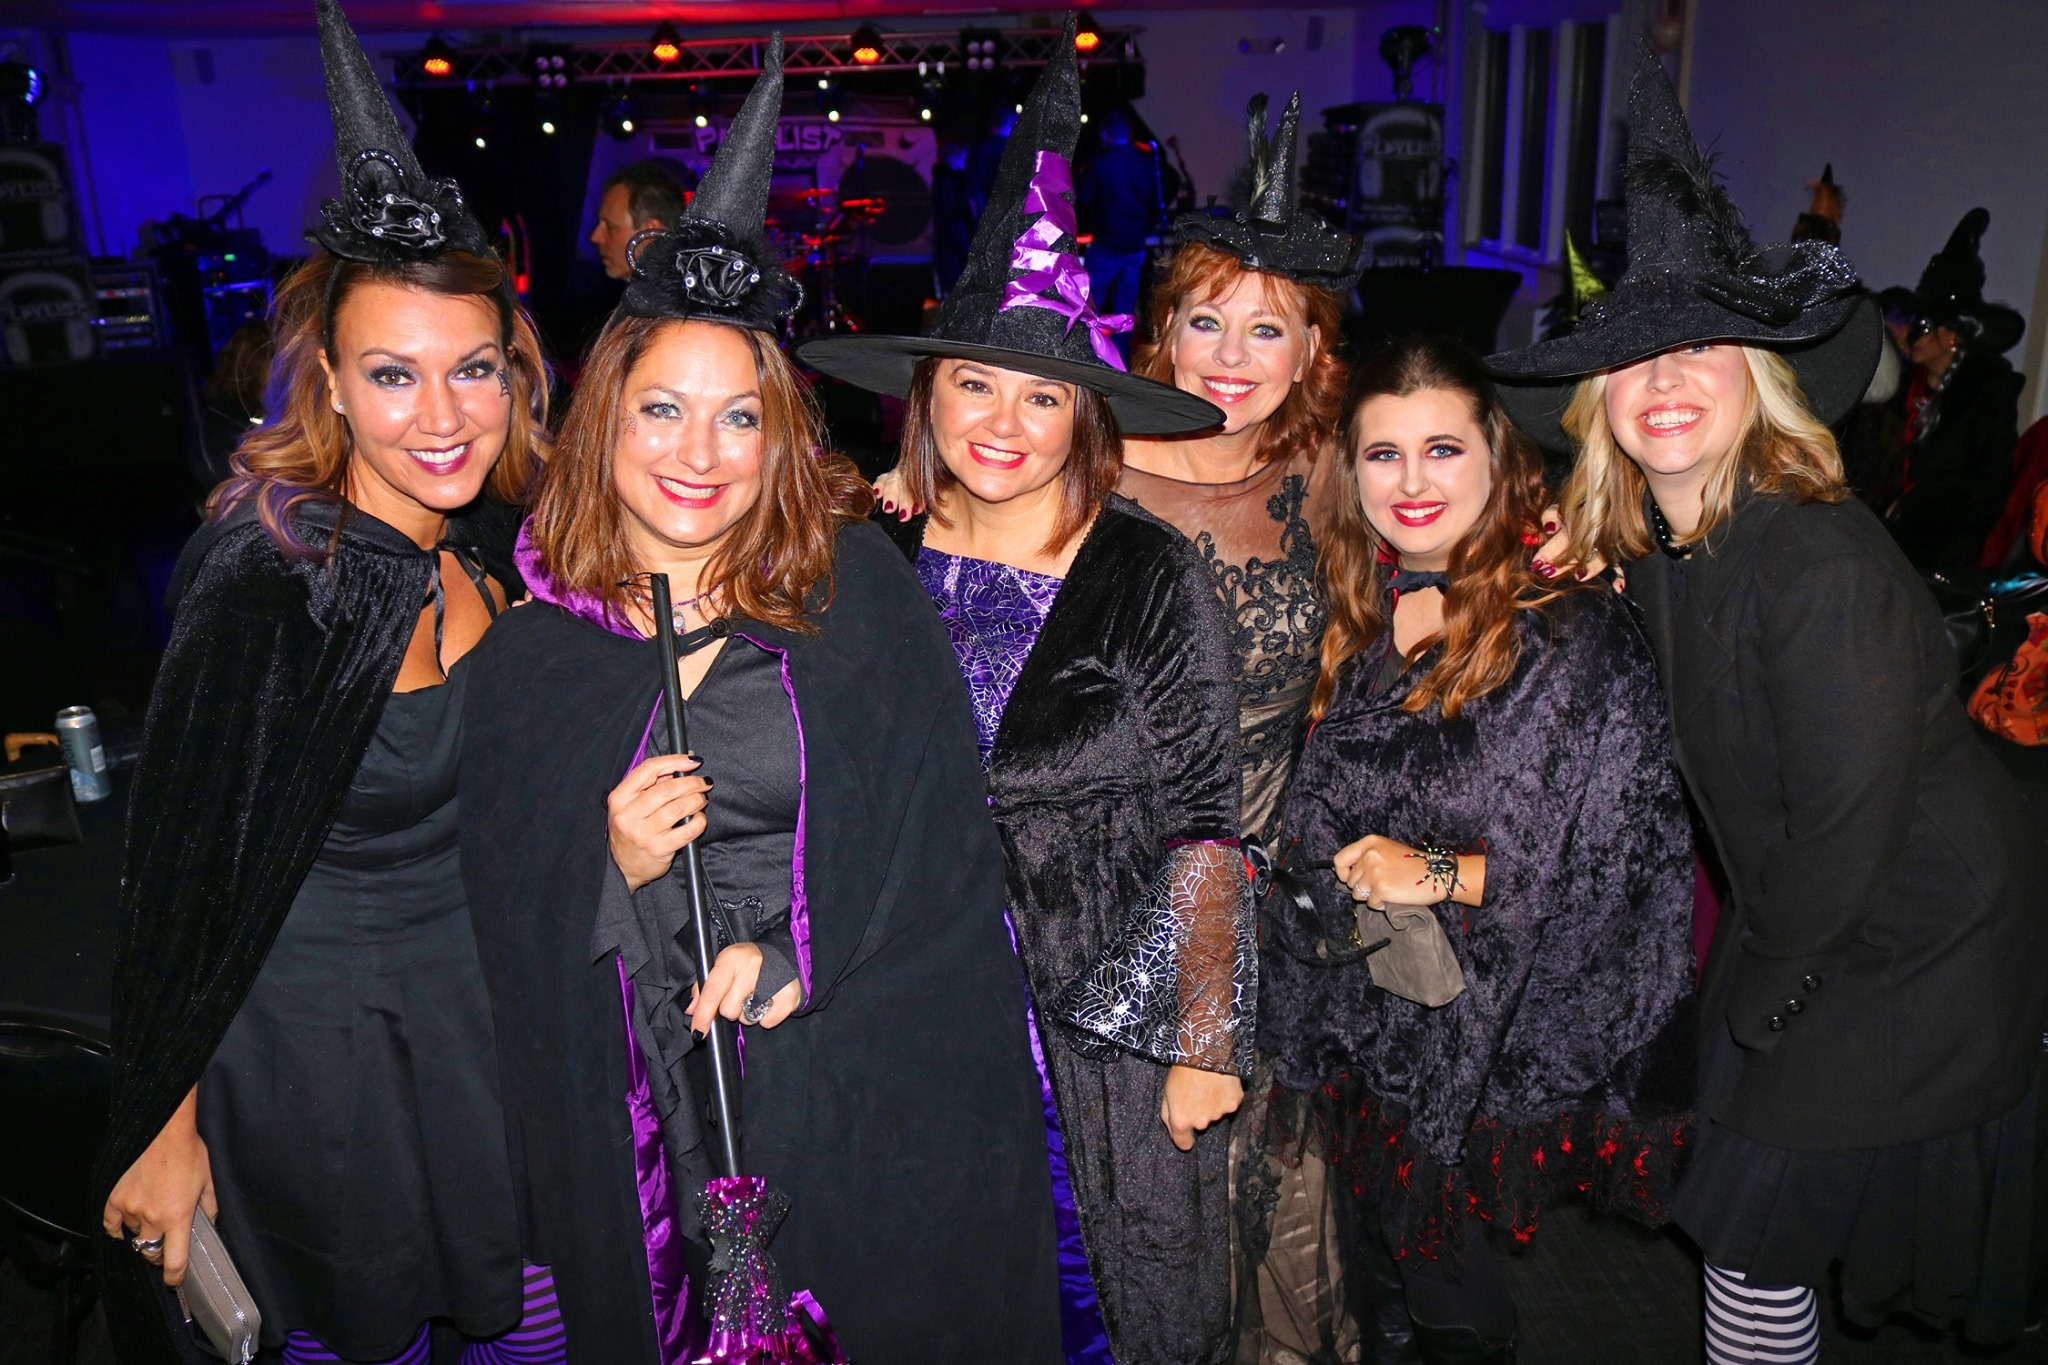 Witches showing off their costumes